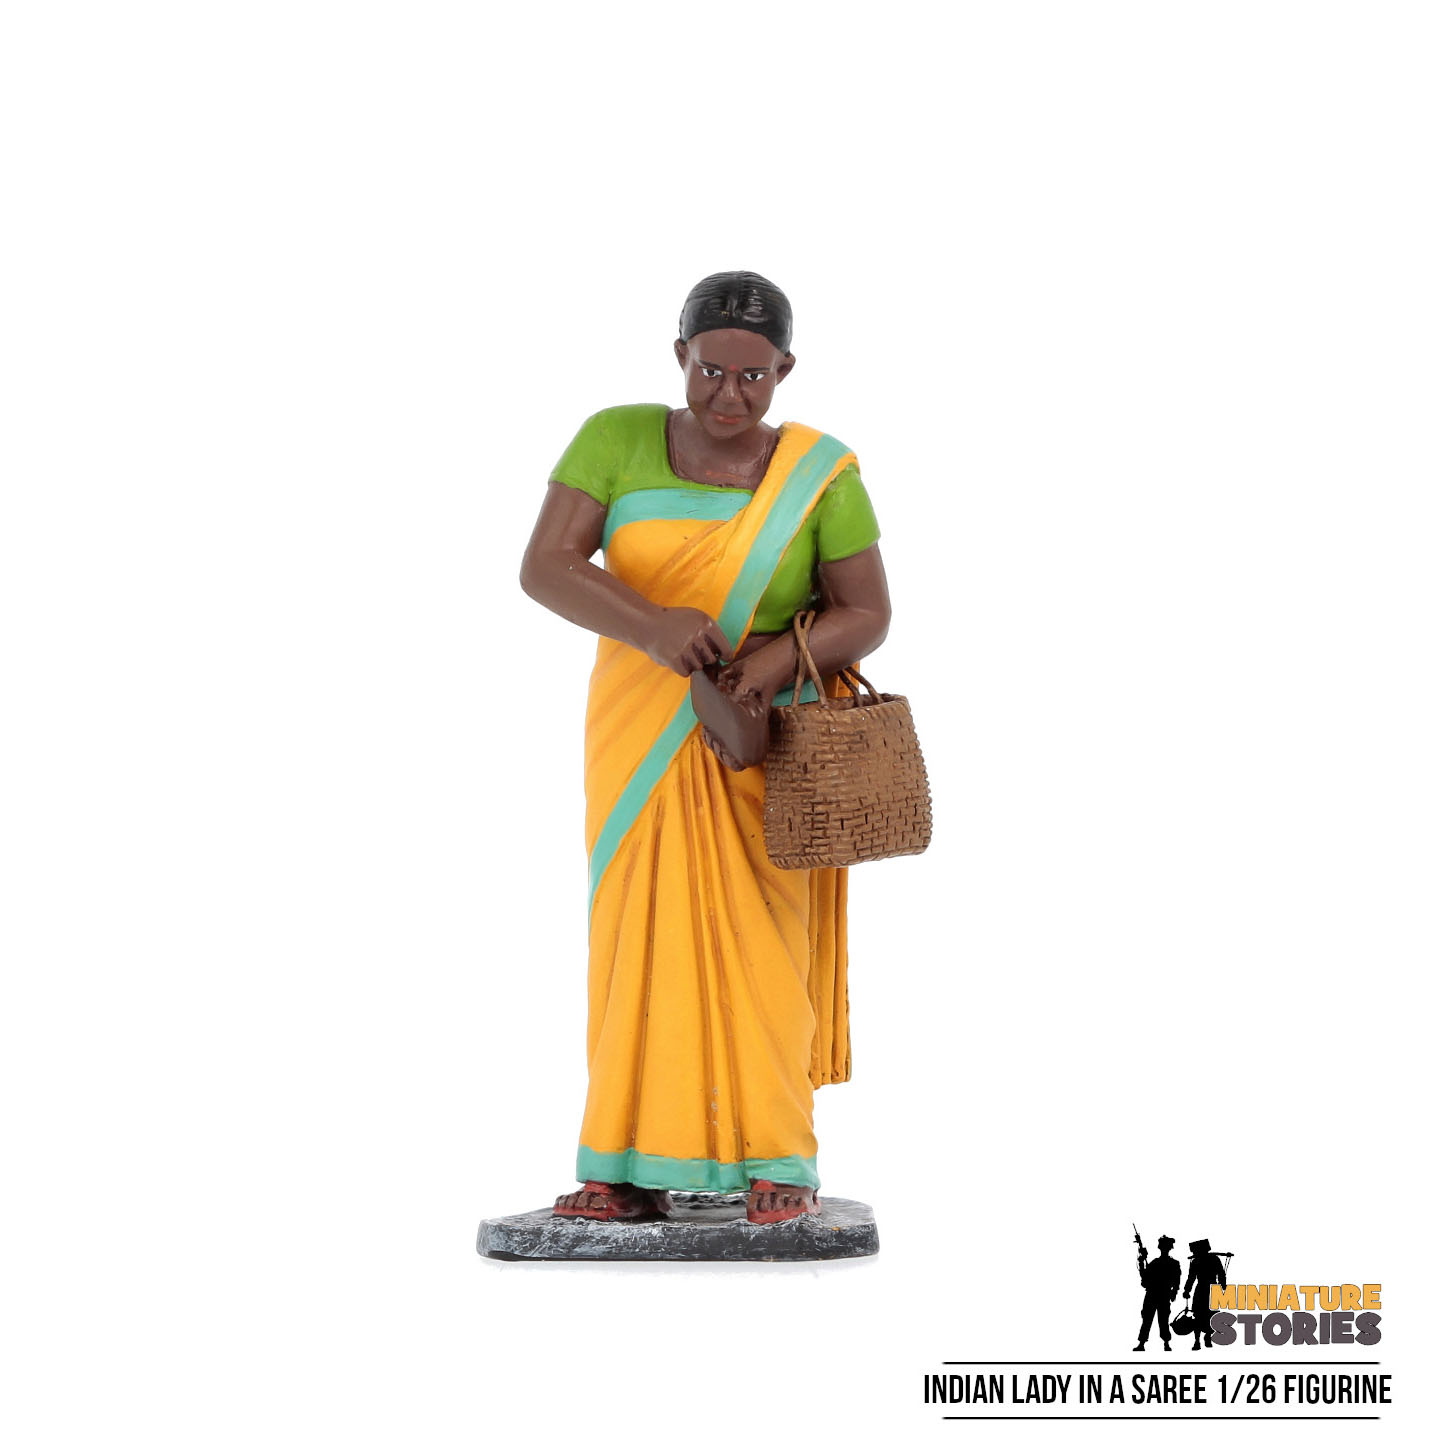 Indian Lady in a Saree Figurine